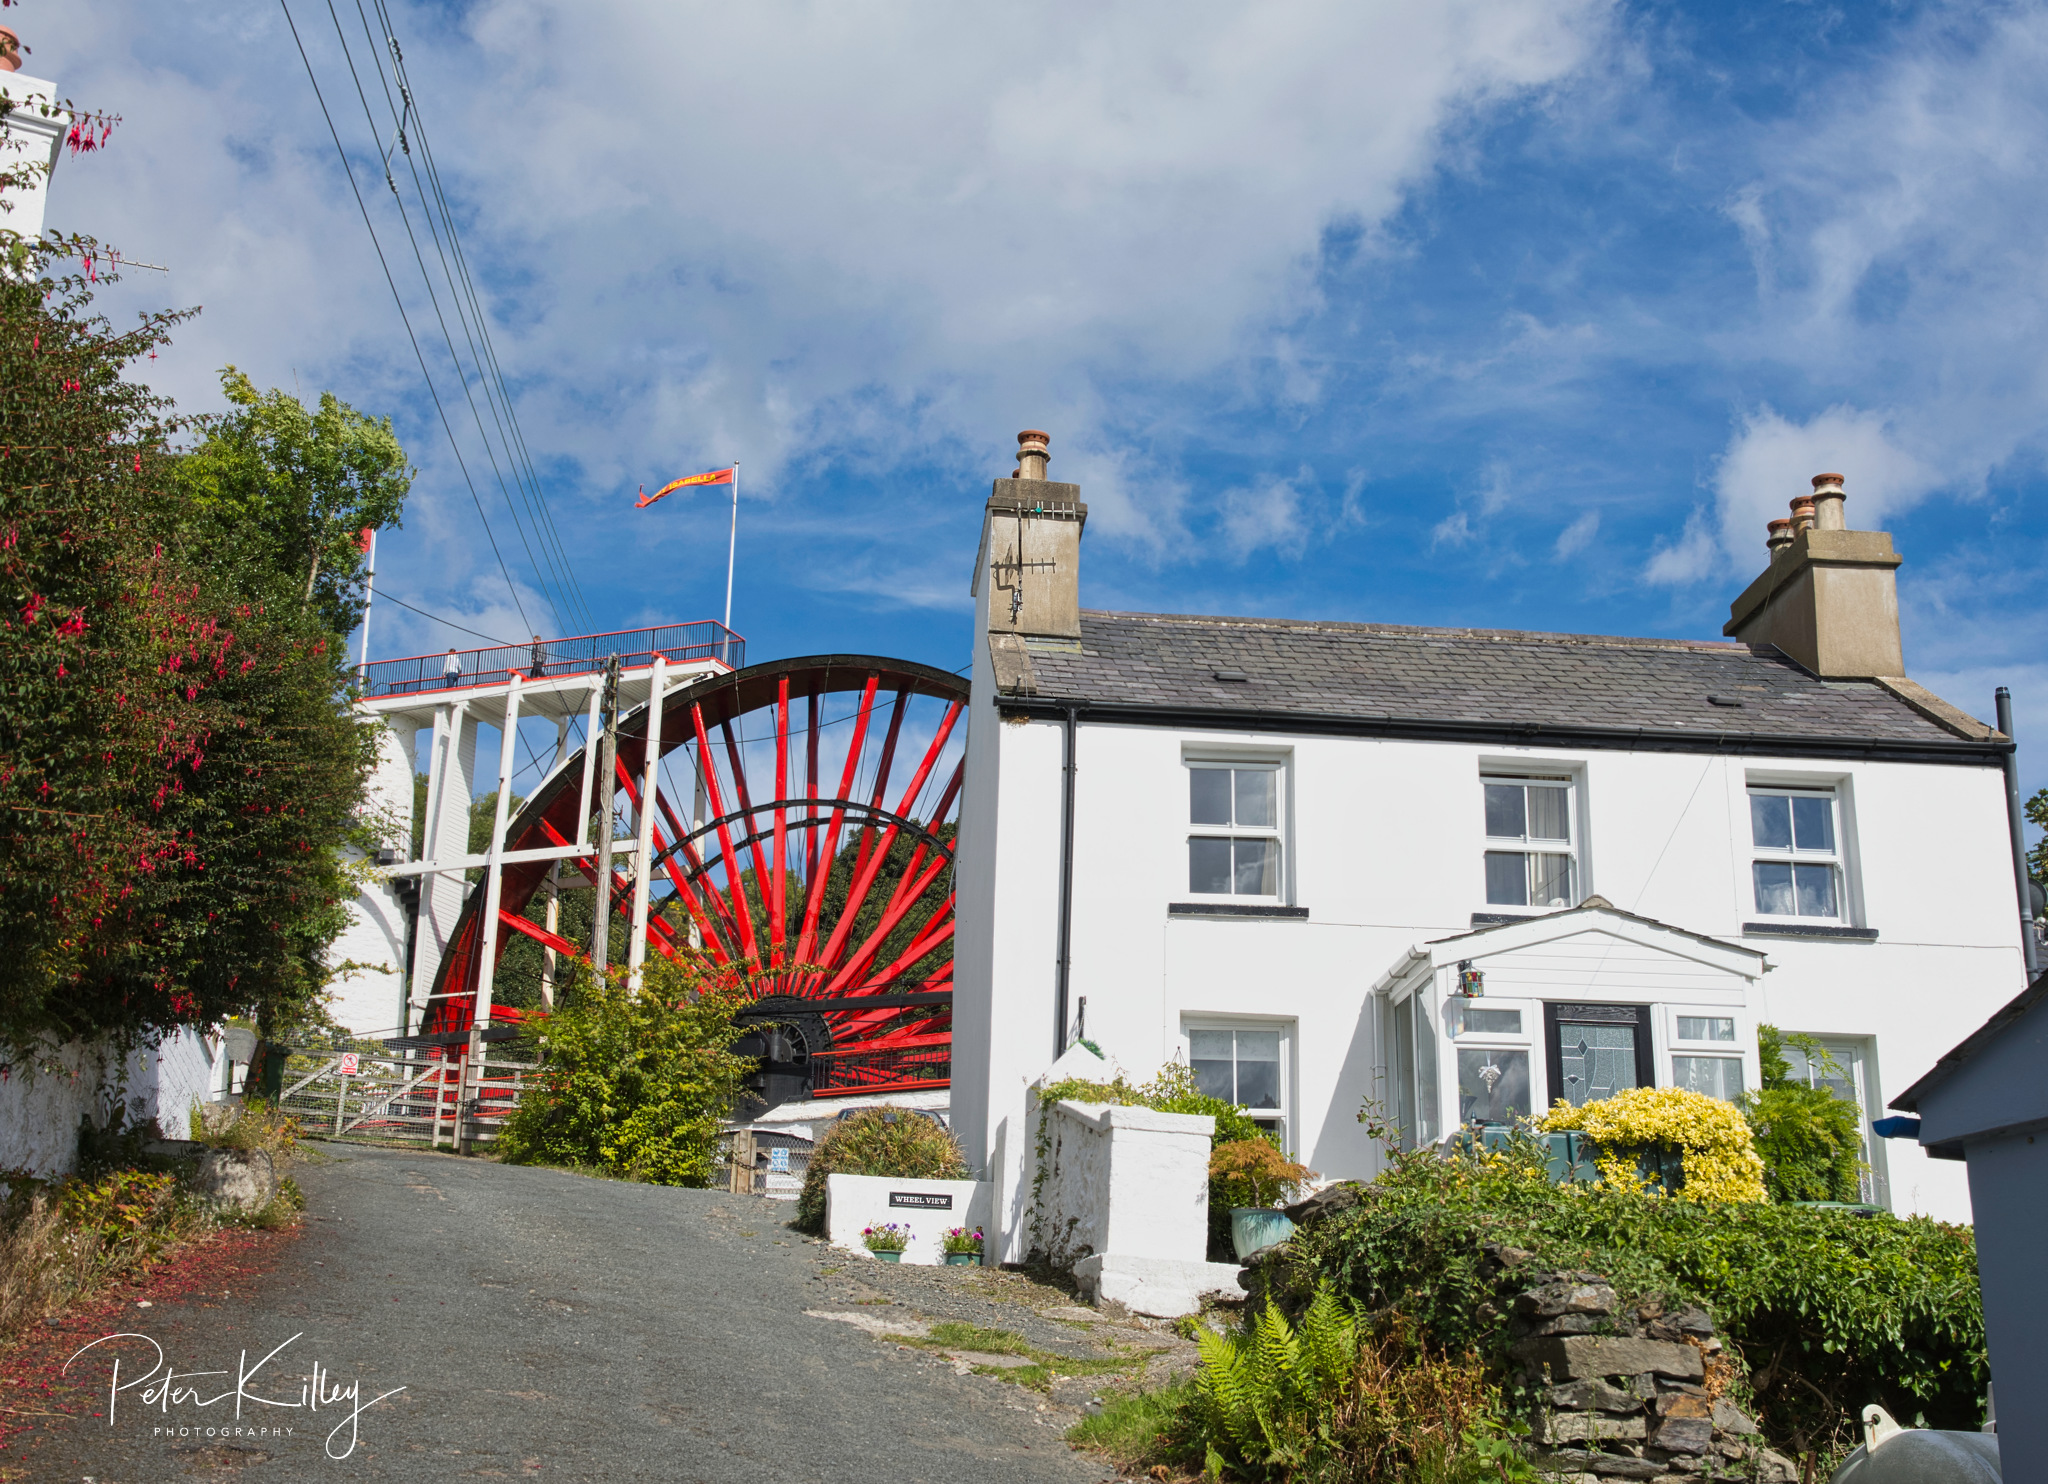 Laxey Wheel - © Peter Killey - www.manxscenes.com